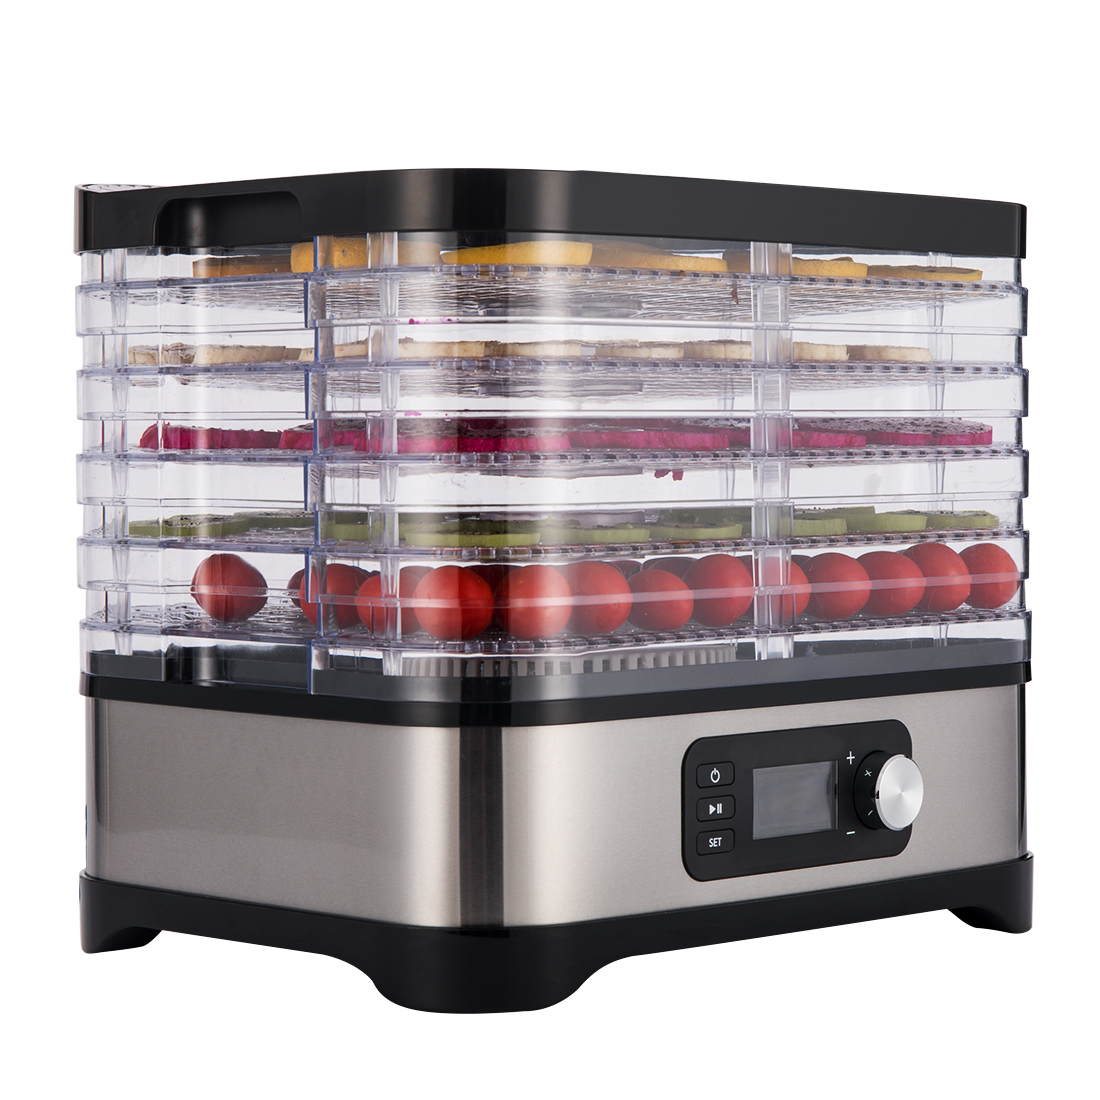 Vivohome 400w 5 Tray Food Dehydrator Preserver Fruit Vegetable Dryer Jerky Maker Ebay